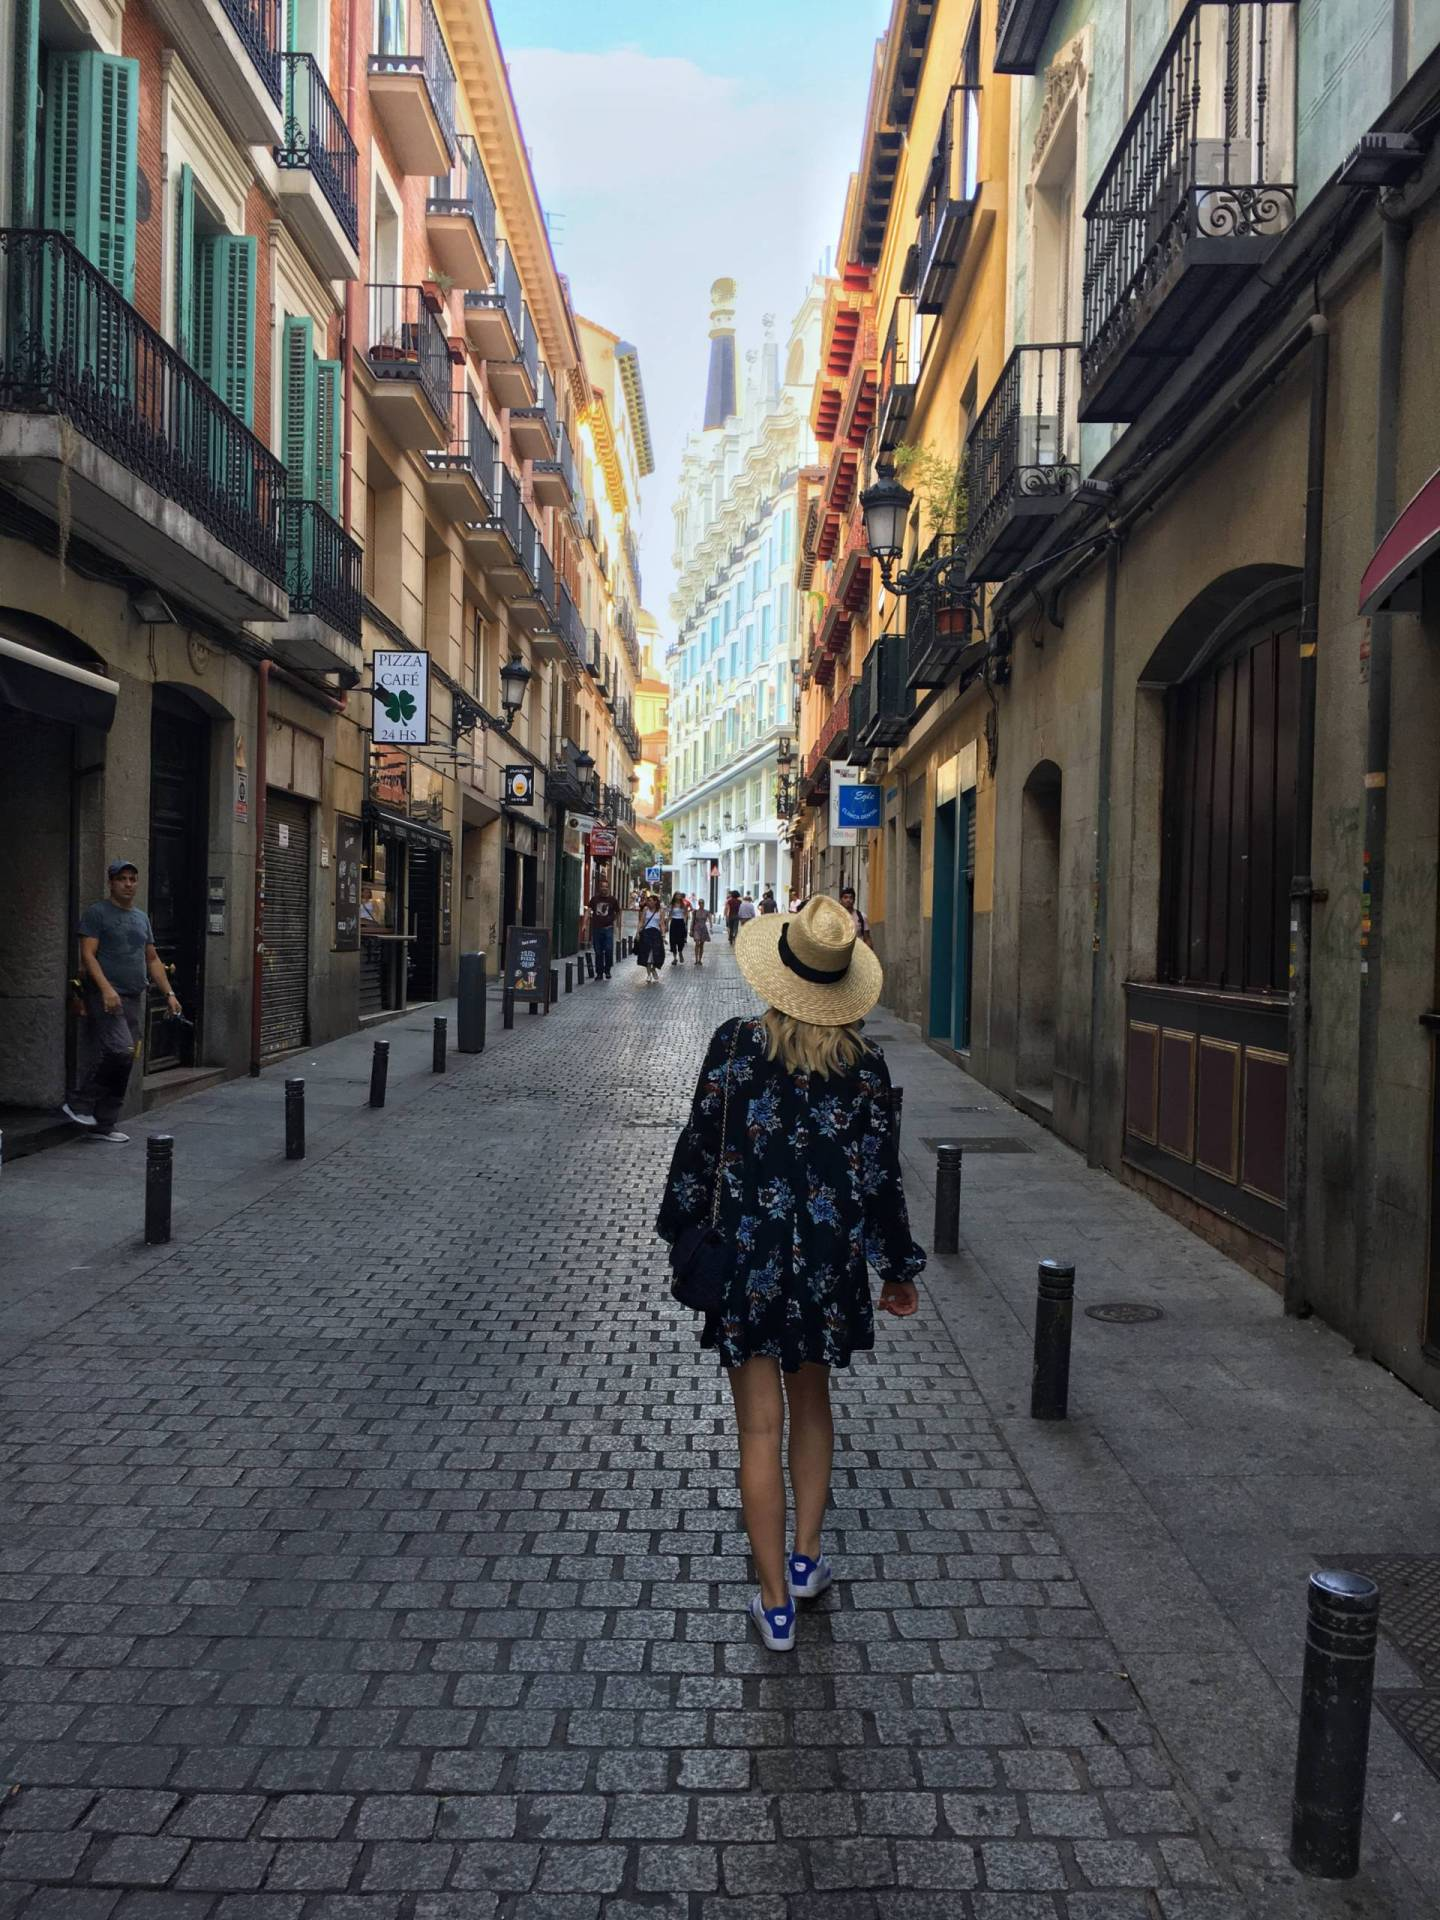 How to Travel When You Don't Have a Flexible Work Schedule